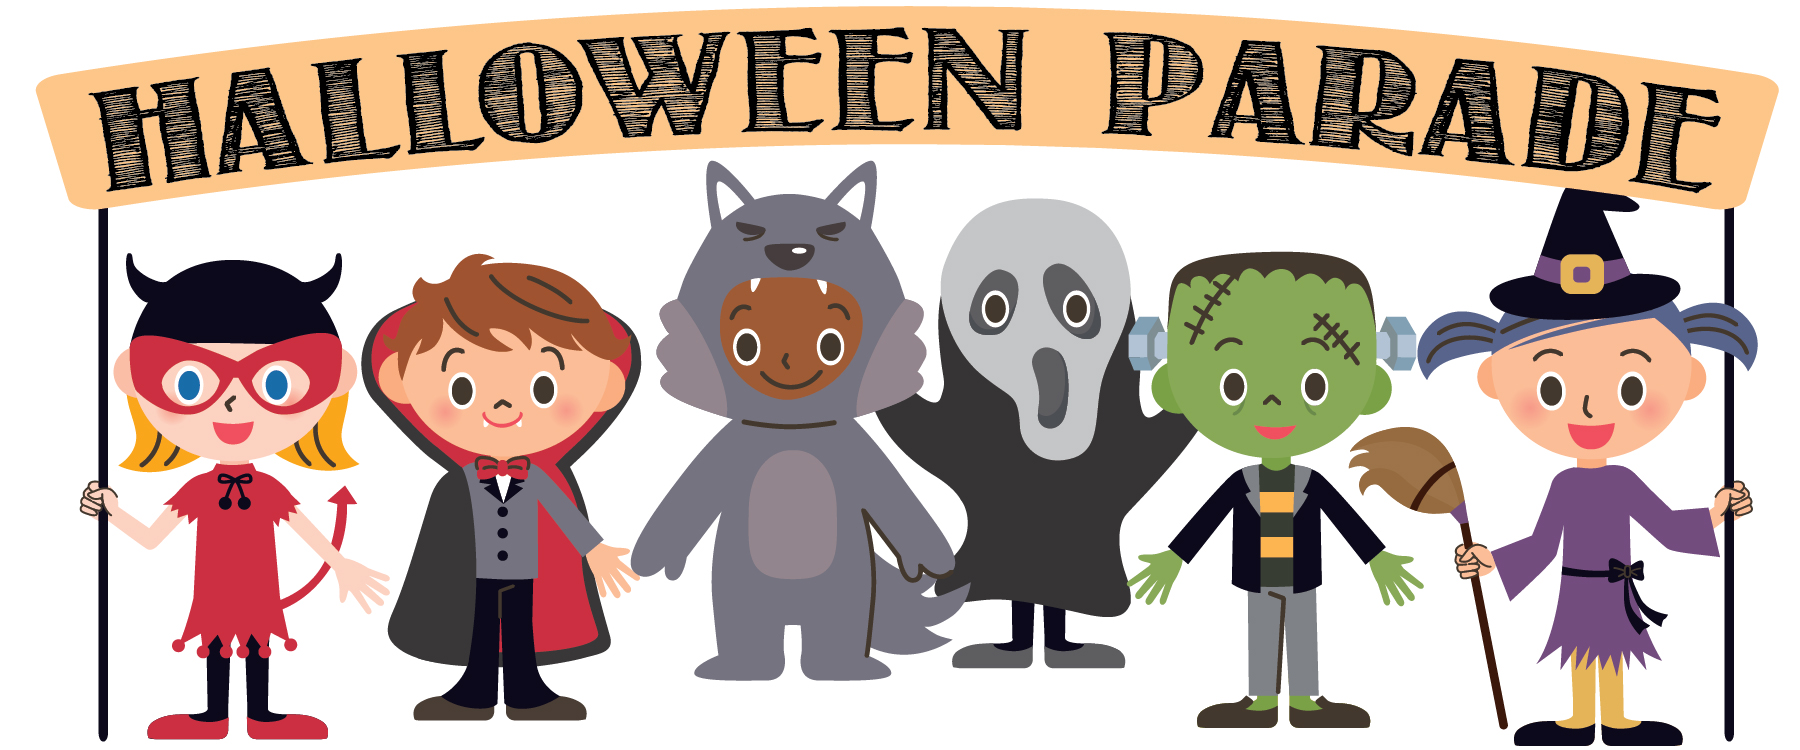 Halloween parade clipart 1 » Clipart Station.